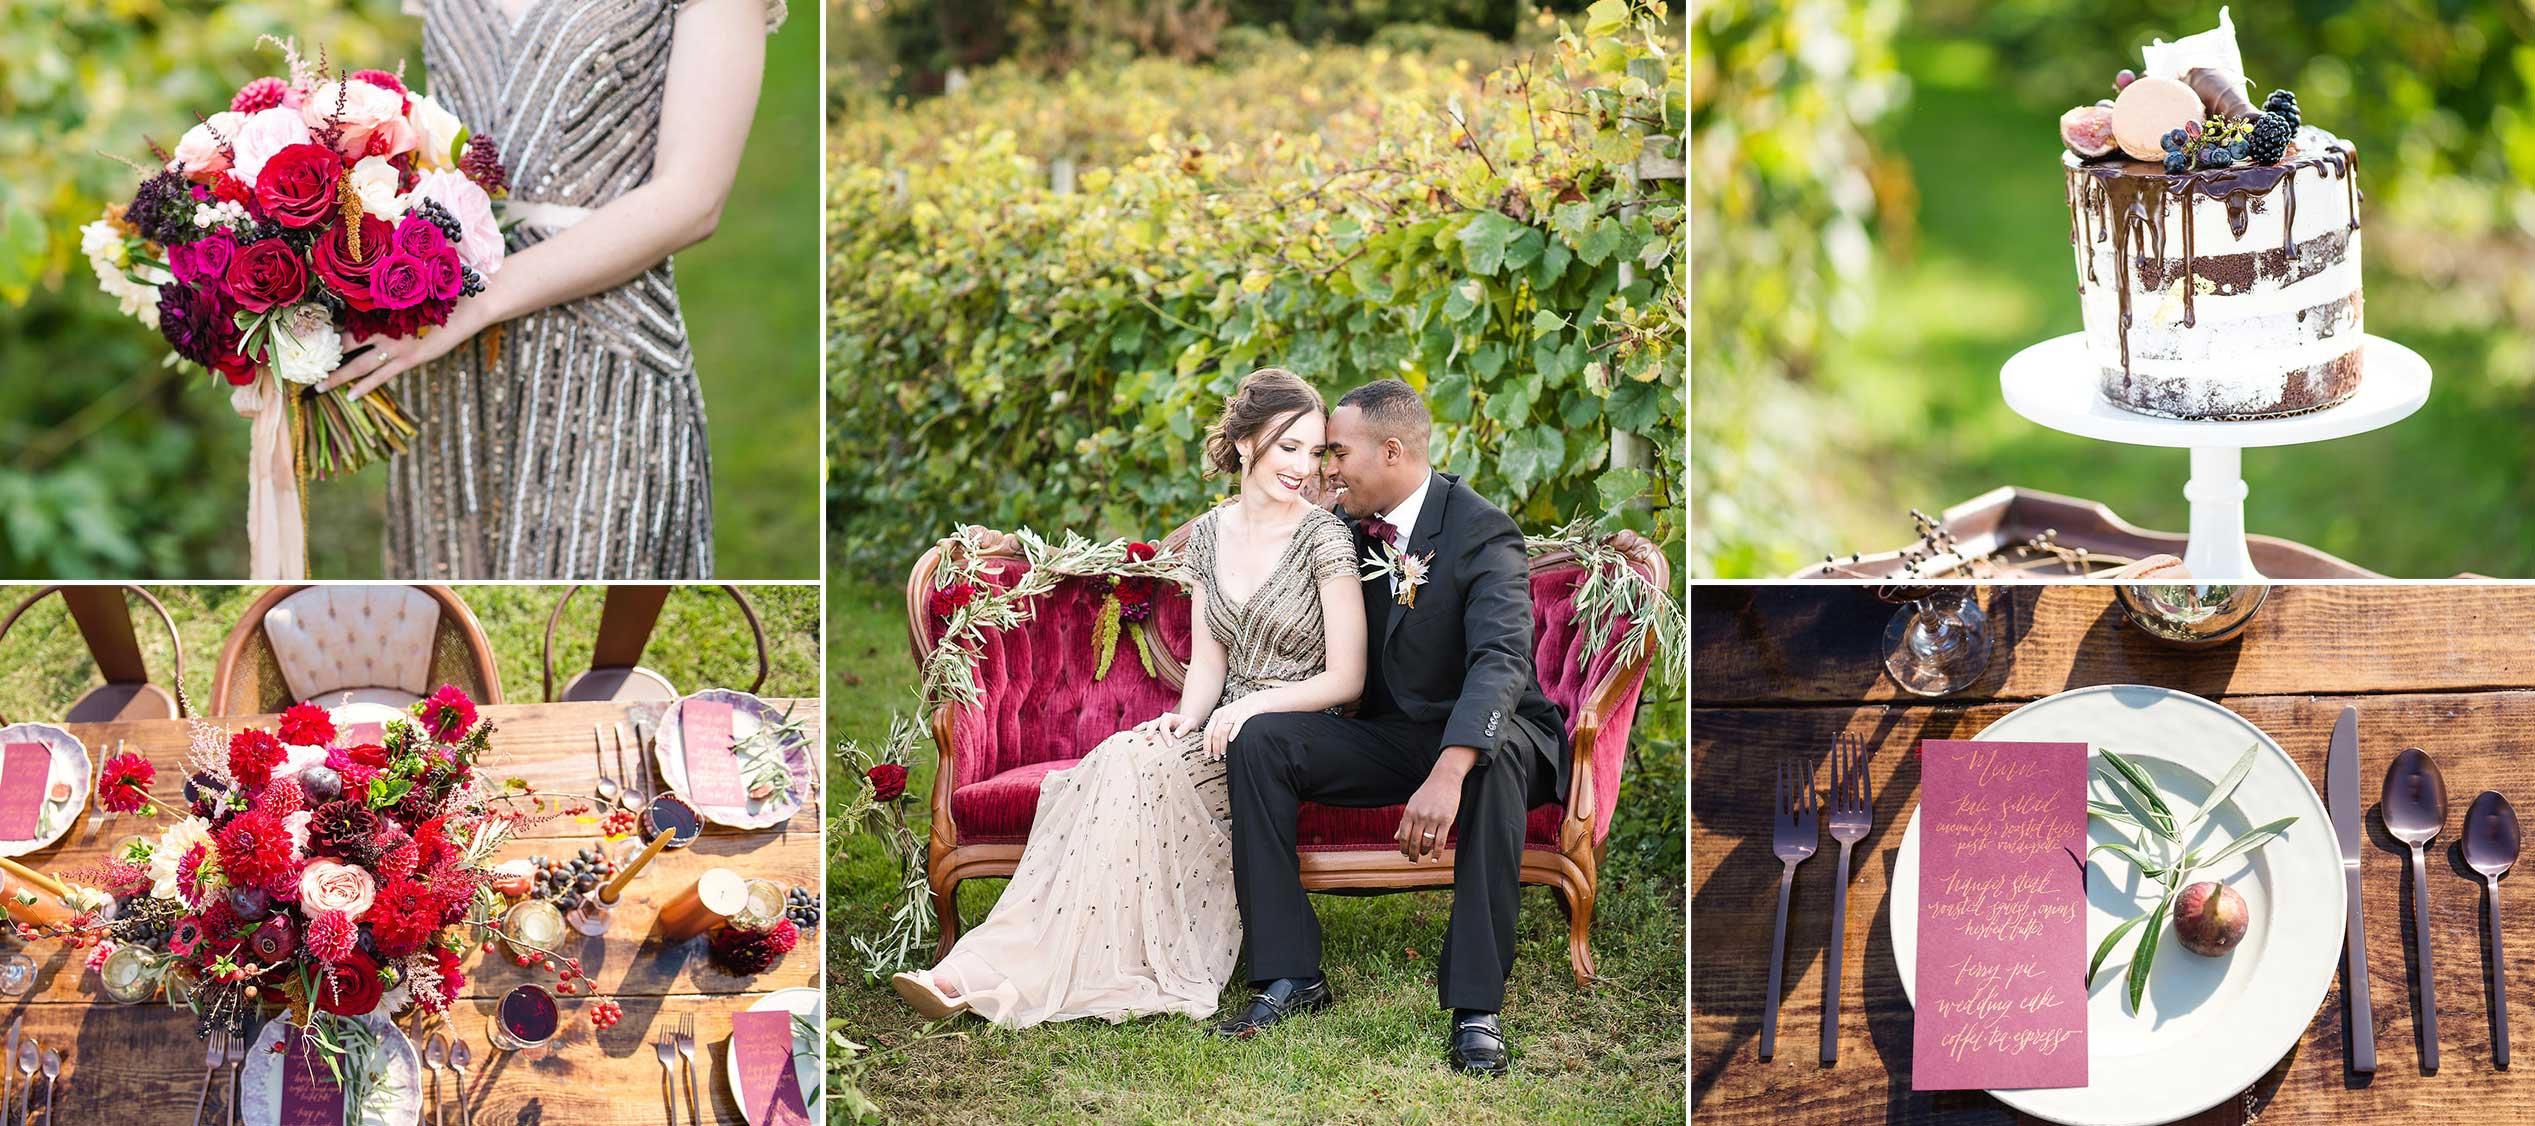 It May Be The Beginning Of The Year, But Weu0027ve Got You Covered With Fall Wedding  Ideas!